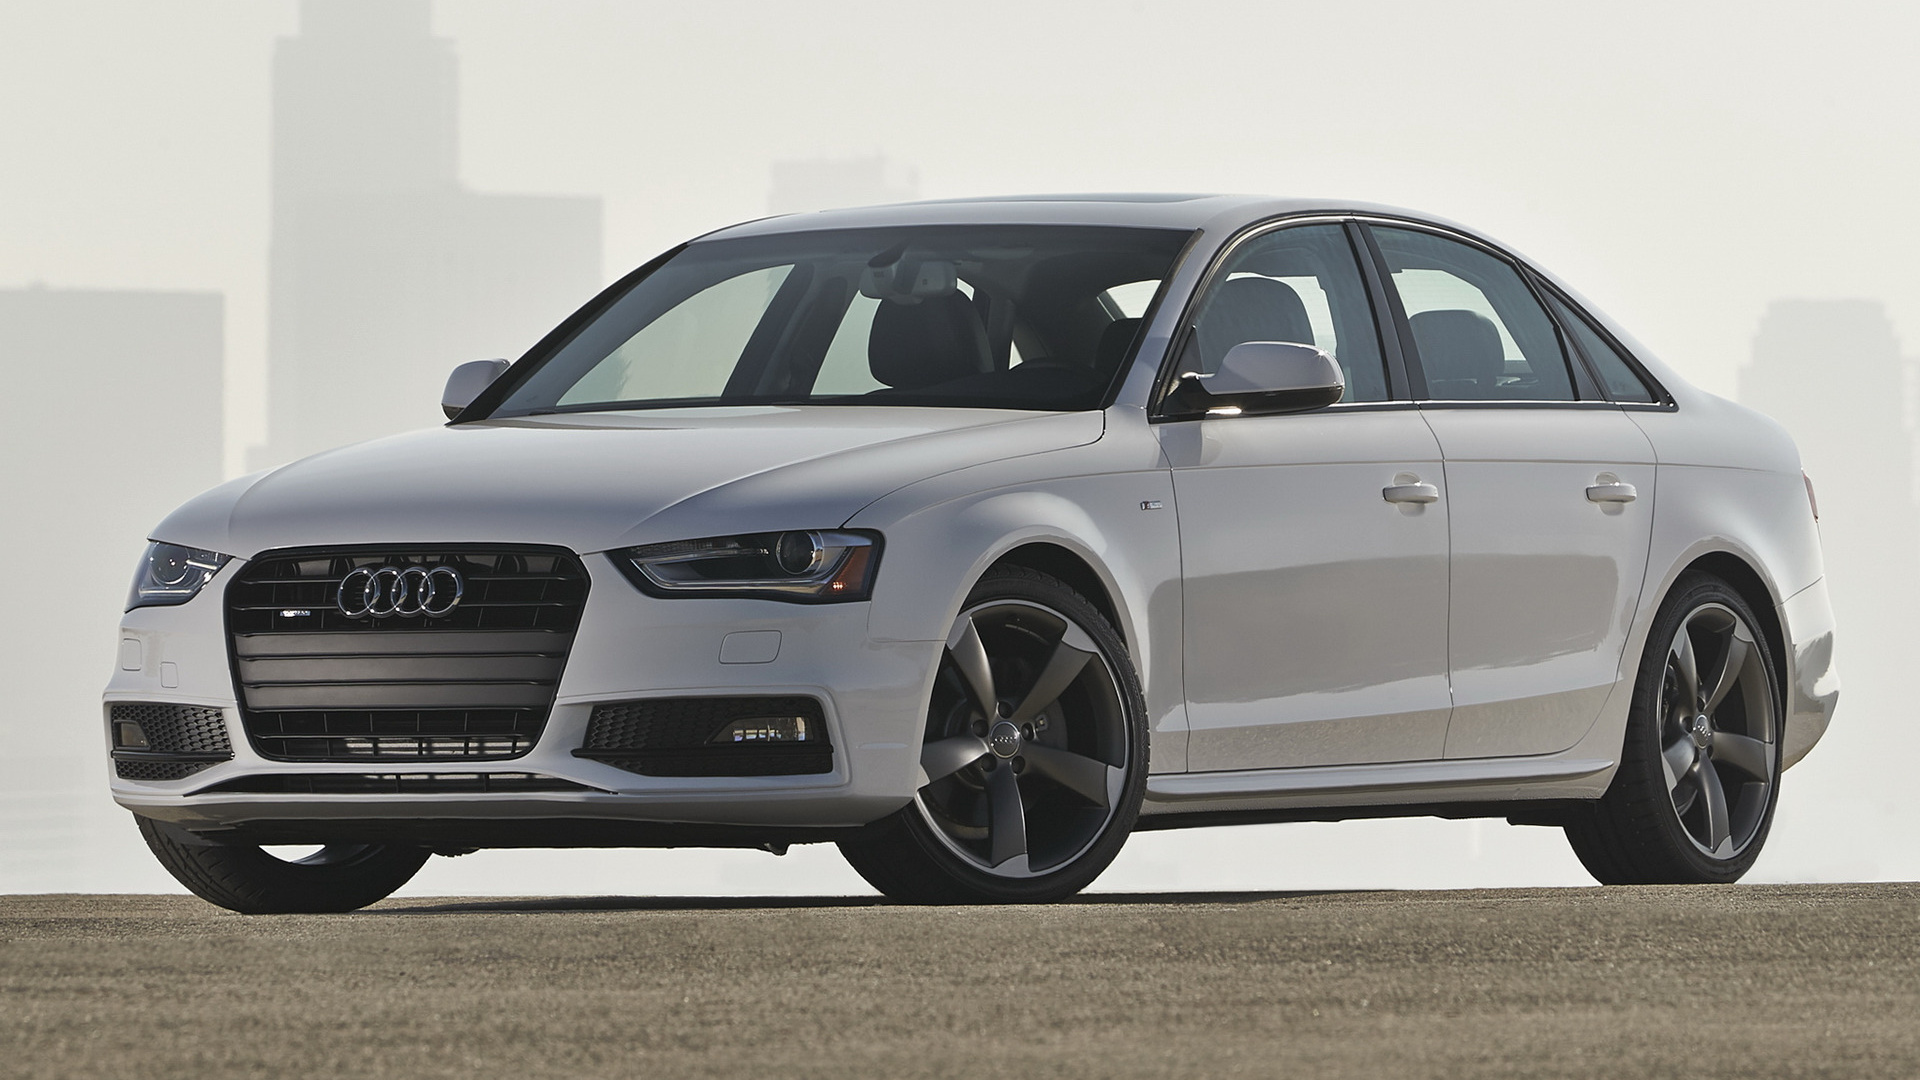 audi a4 sedan s line 2012 us wallpapers and hd images car pixel. Black Bedroom Furniture Sets. Home Design Ideas